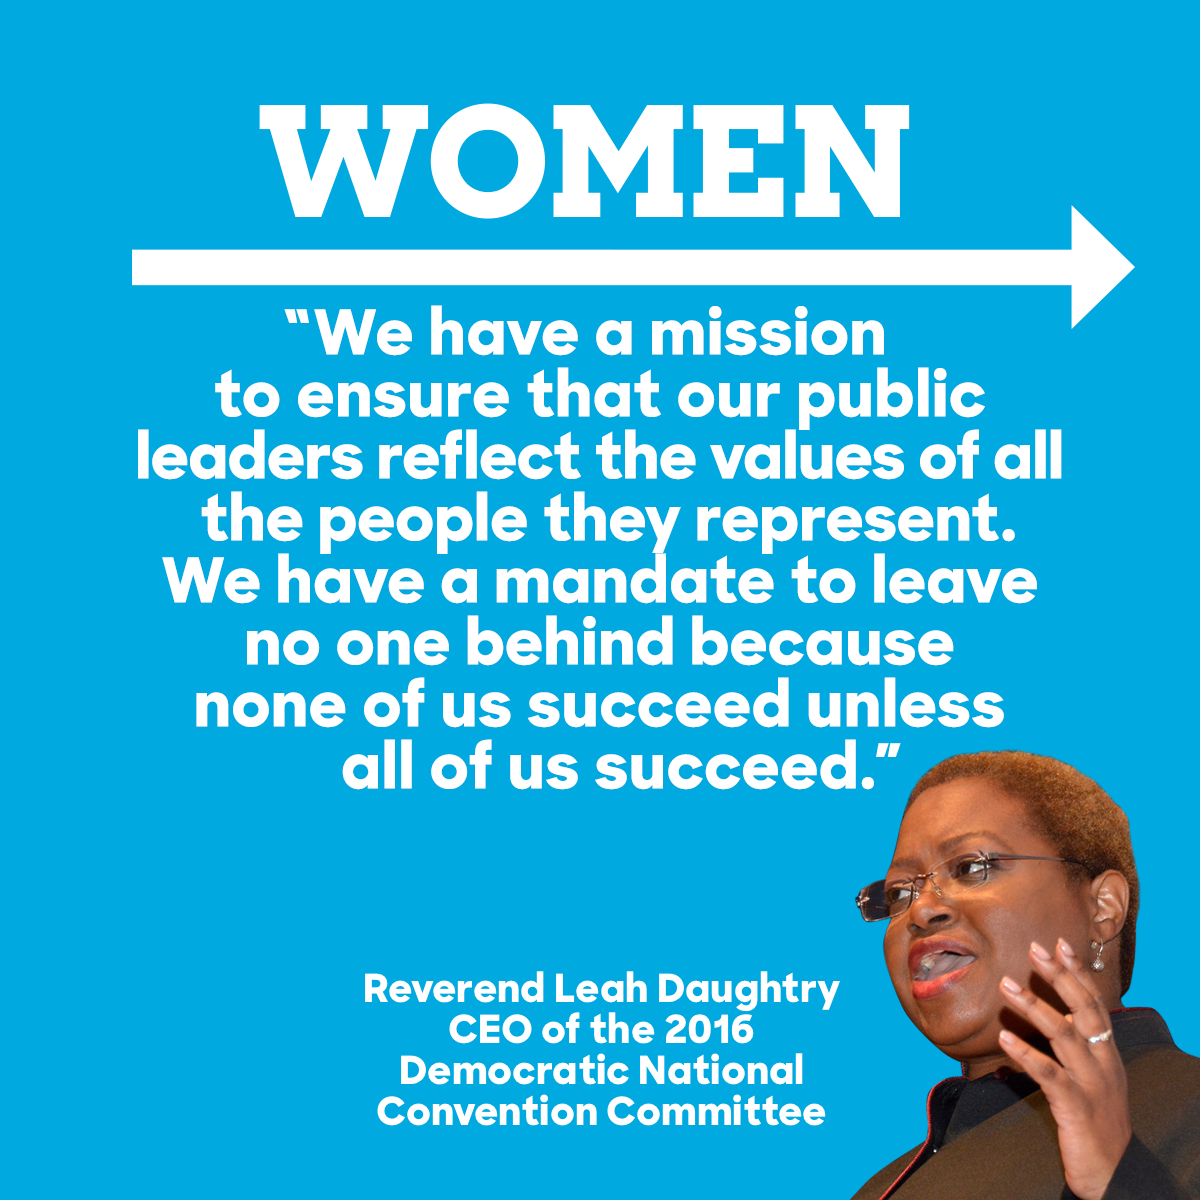 women-quotes-7-leah-daughtry-090716A.png